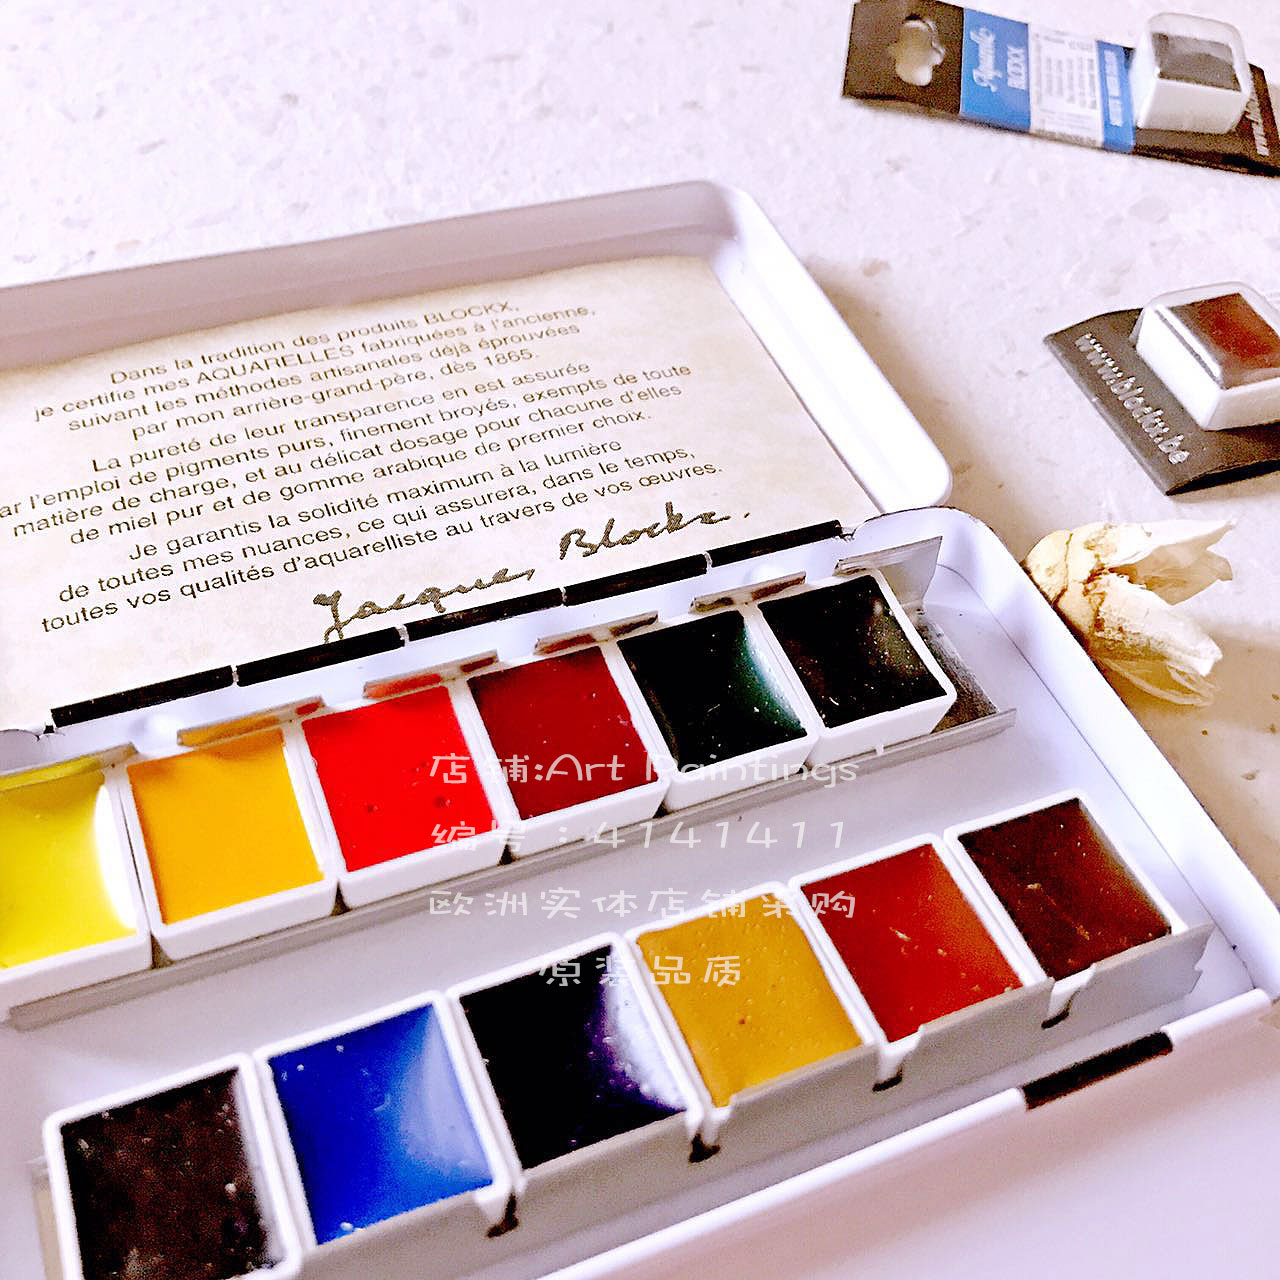 Domestic Spot Belgium One Hundred Years Blockx Artist Level Traditional Handmade Solid Watercolor PigmentDomestic Spot Belgium One Hundred Years Blockx Artist Level Traditional Handmade Solid Watercolor Pigment